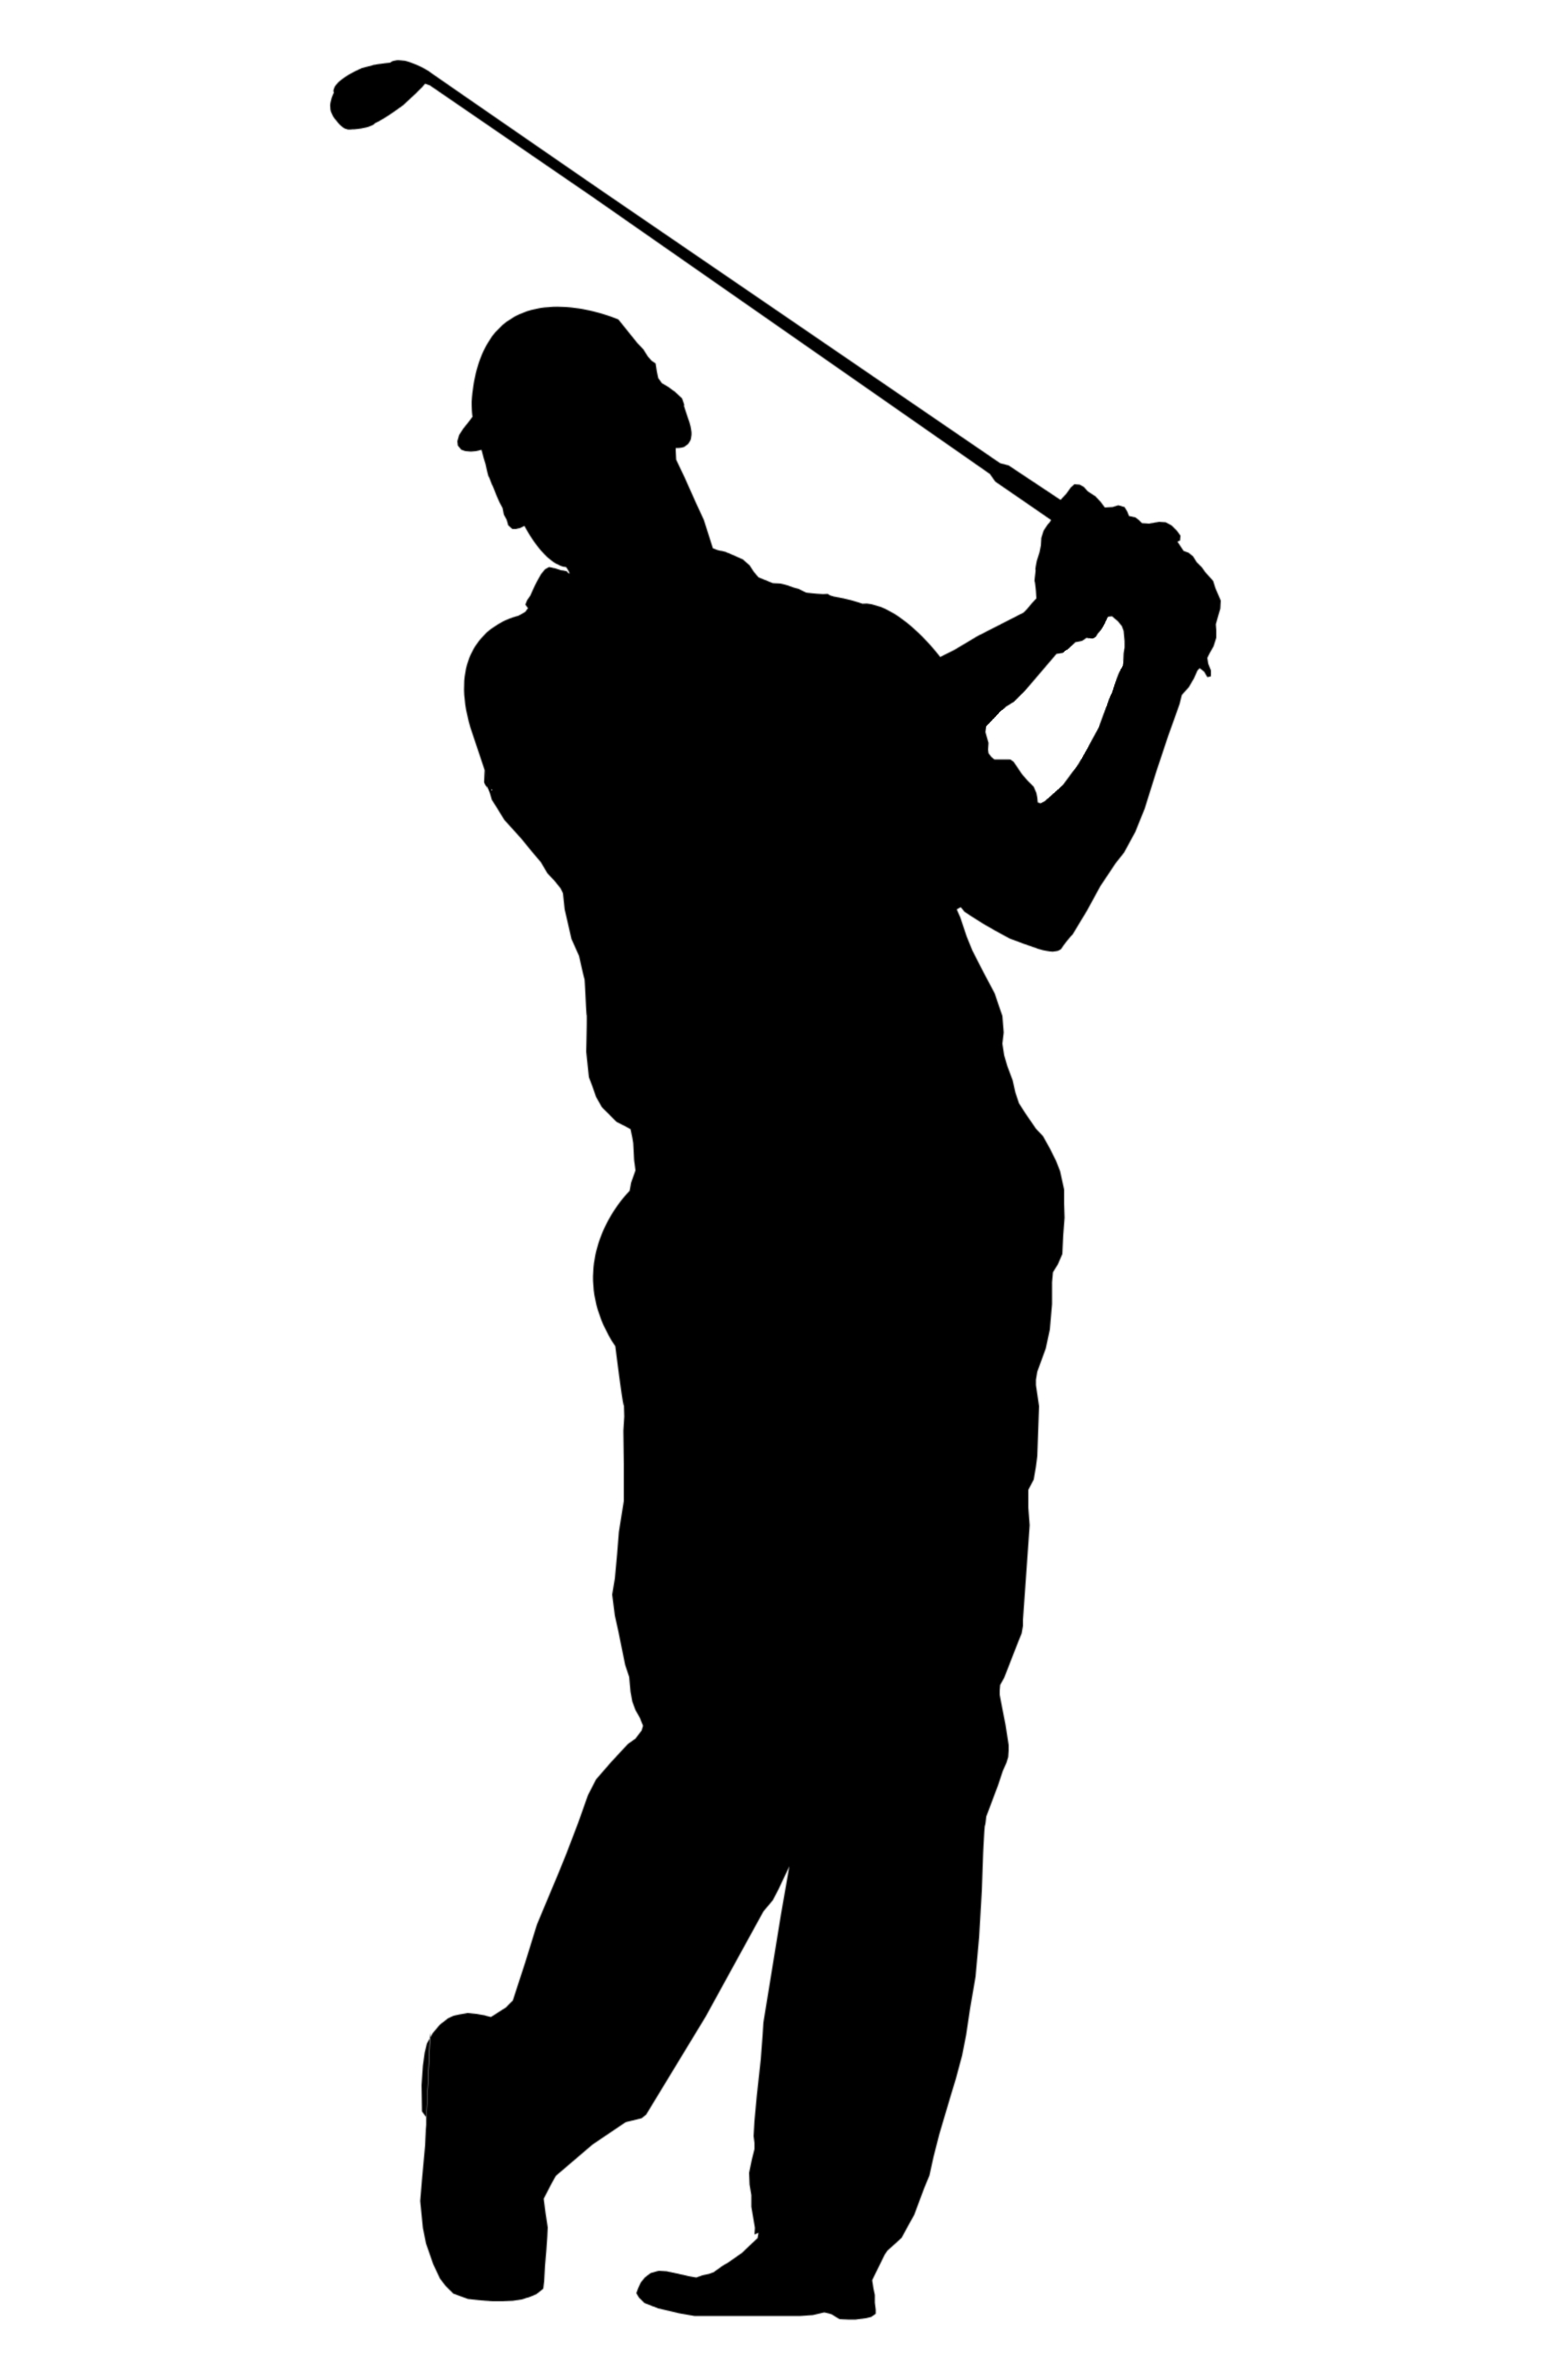 Golf Course clipart golfing picture #1